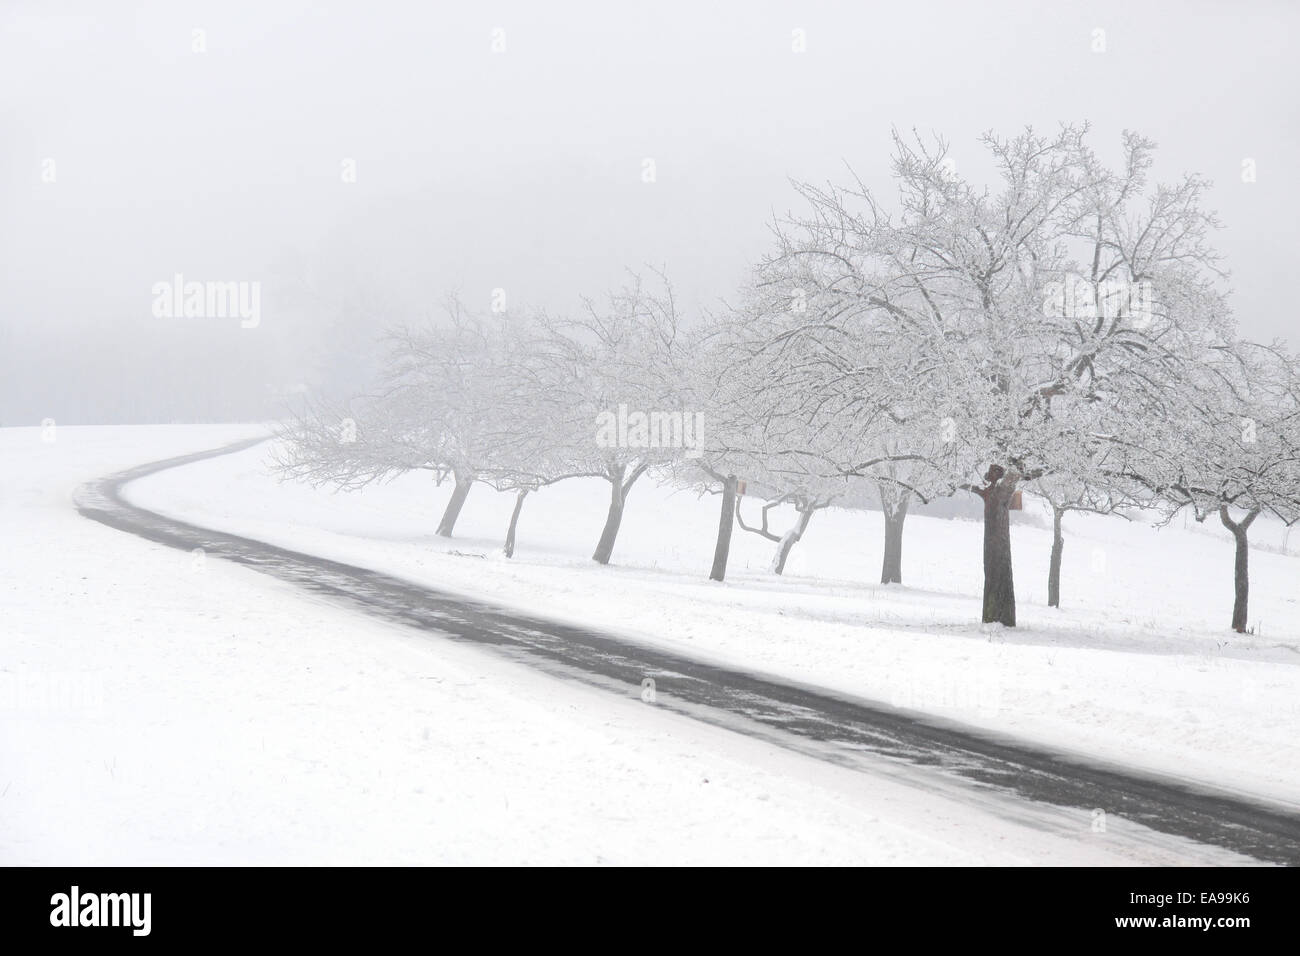 Snowy fruit trees with fog at Engenhahn in the Taunus, Hesse, Germany - Stock Image